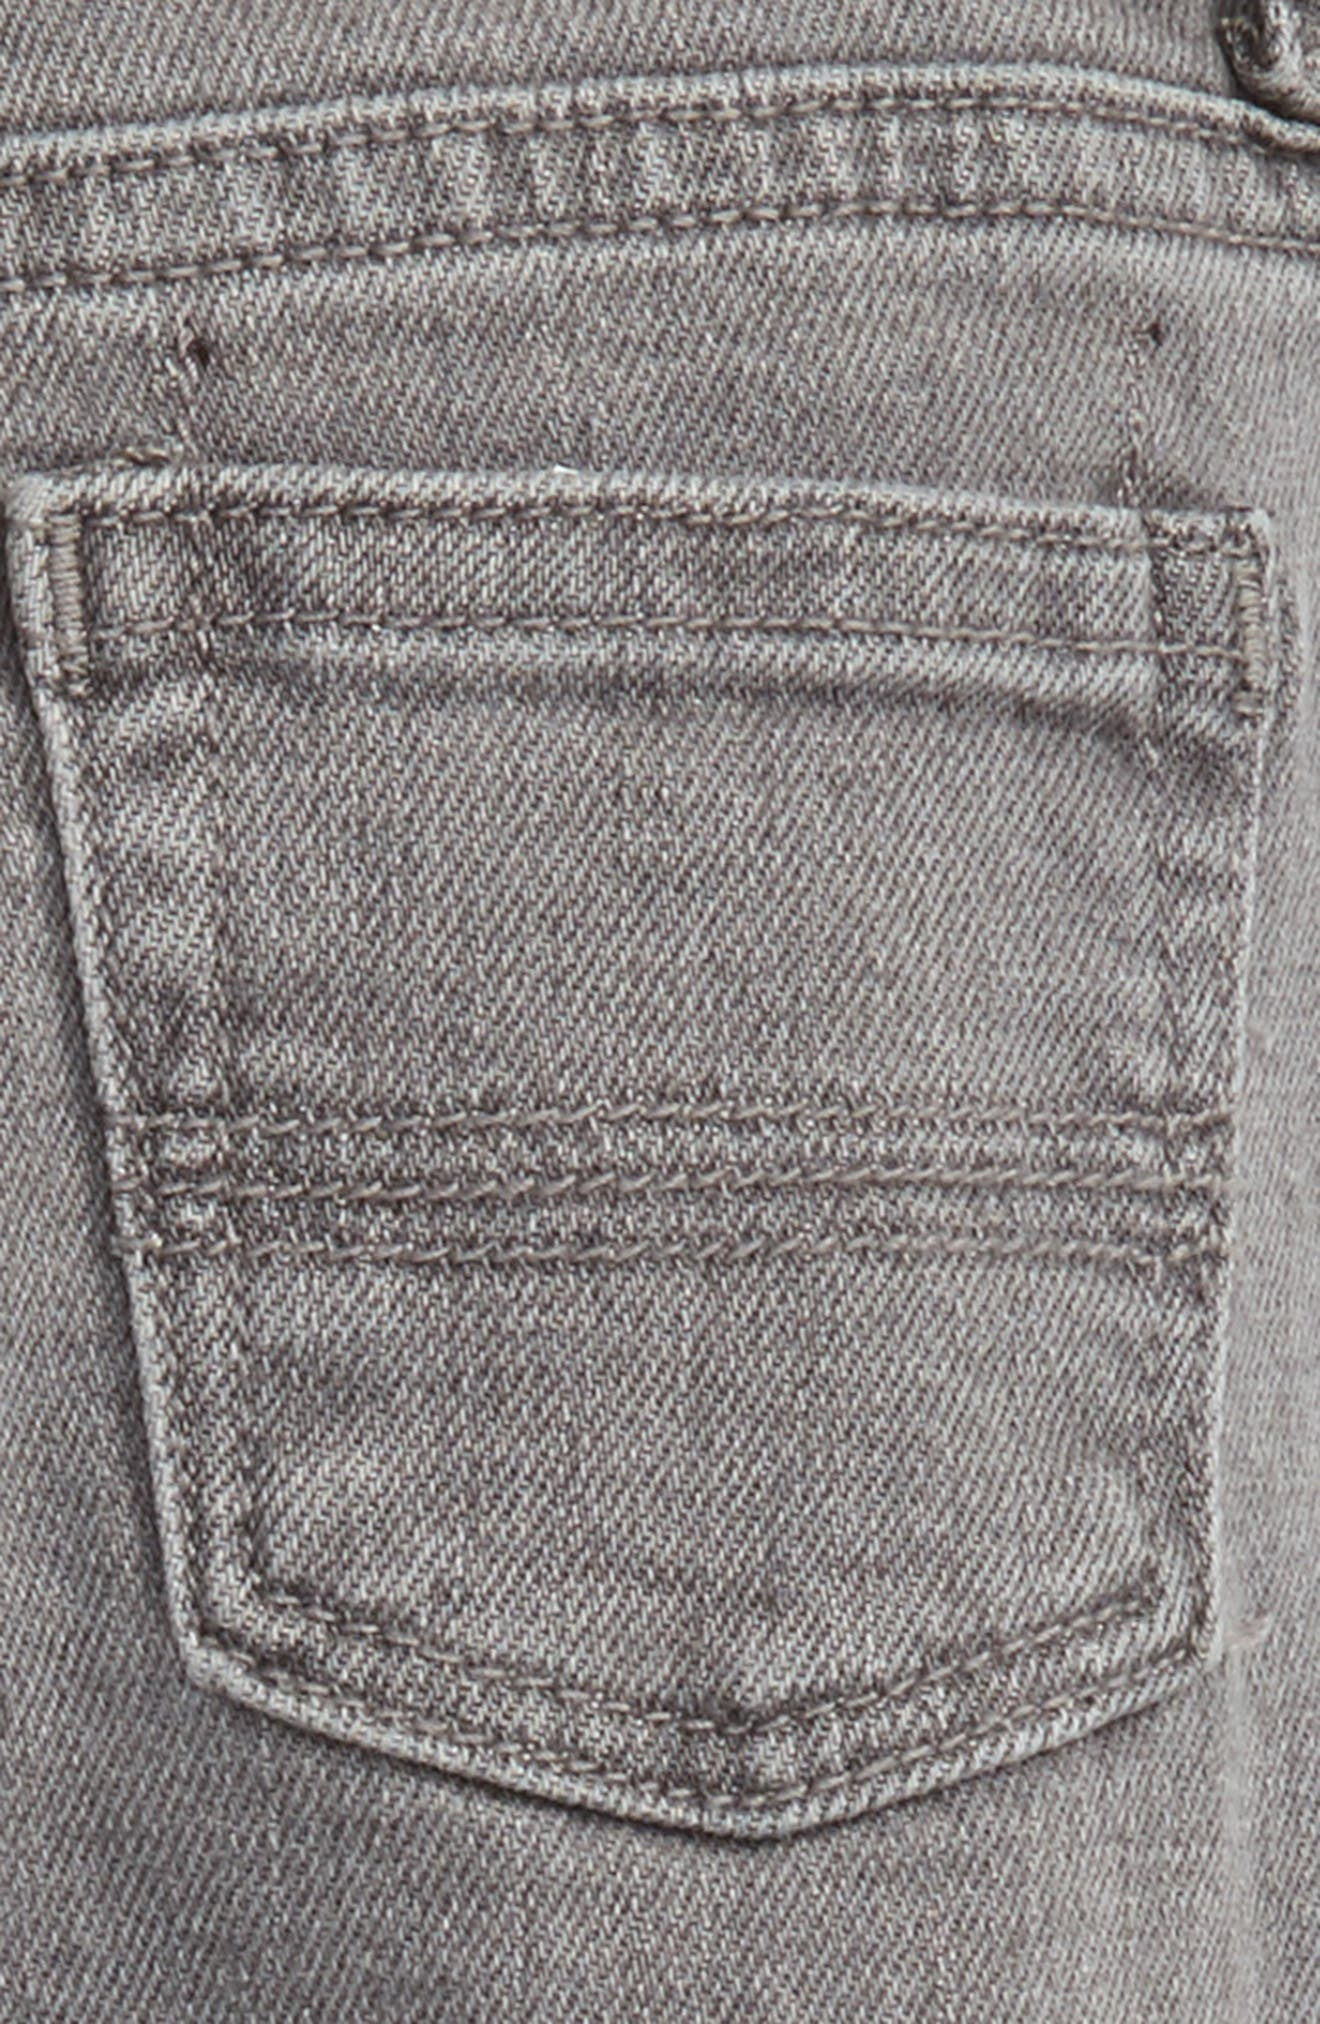 Slouch Jeans,                             Alternate thumbnail 3, color,                             Grey